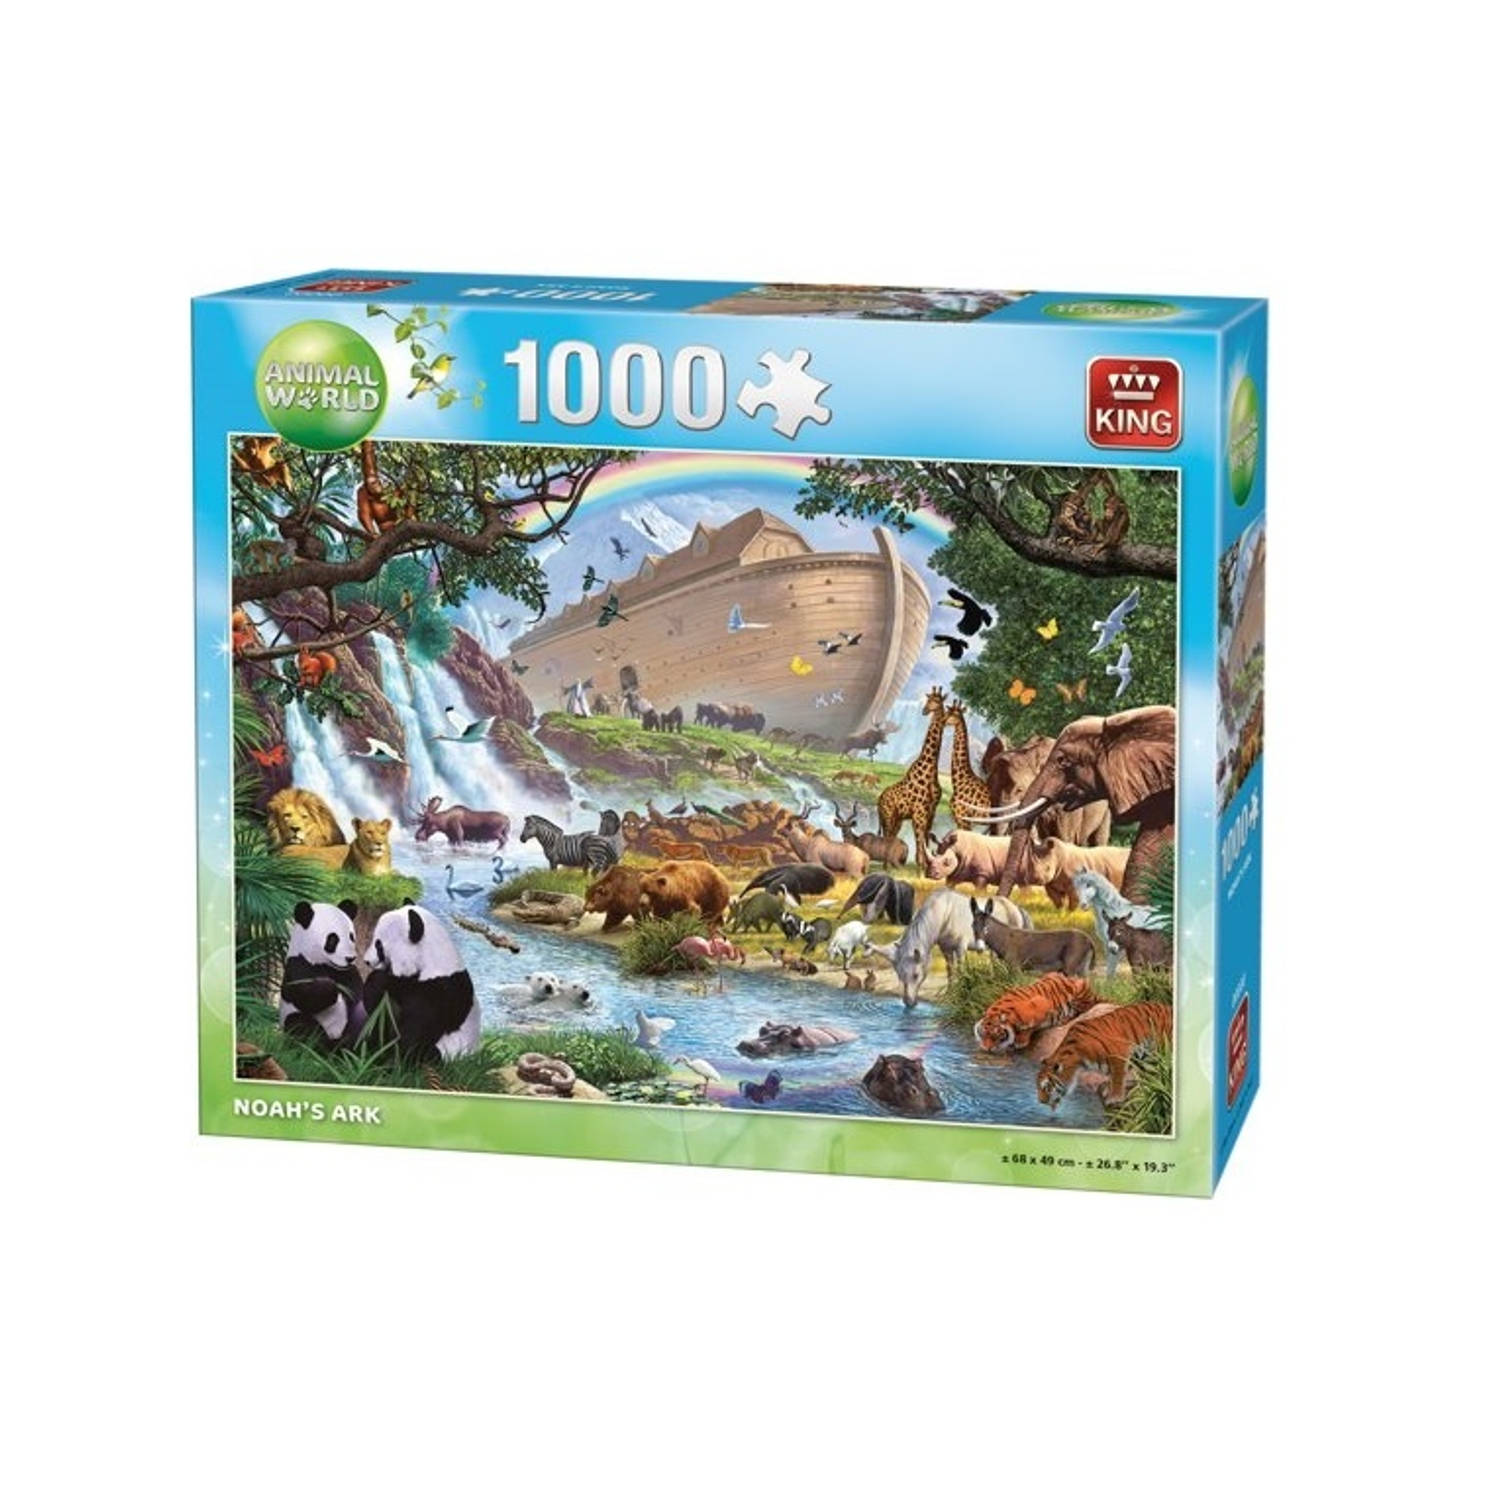 King International legpuzzel Noah's Arc 1000 Stukjes 68 x 49 cm